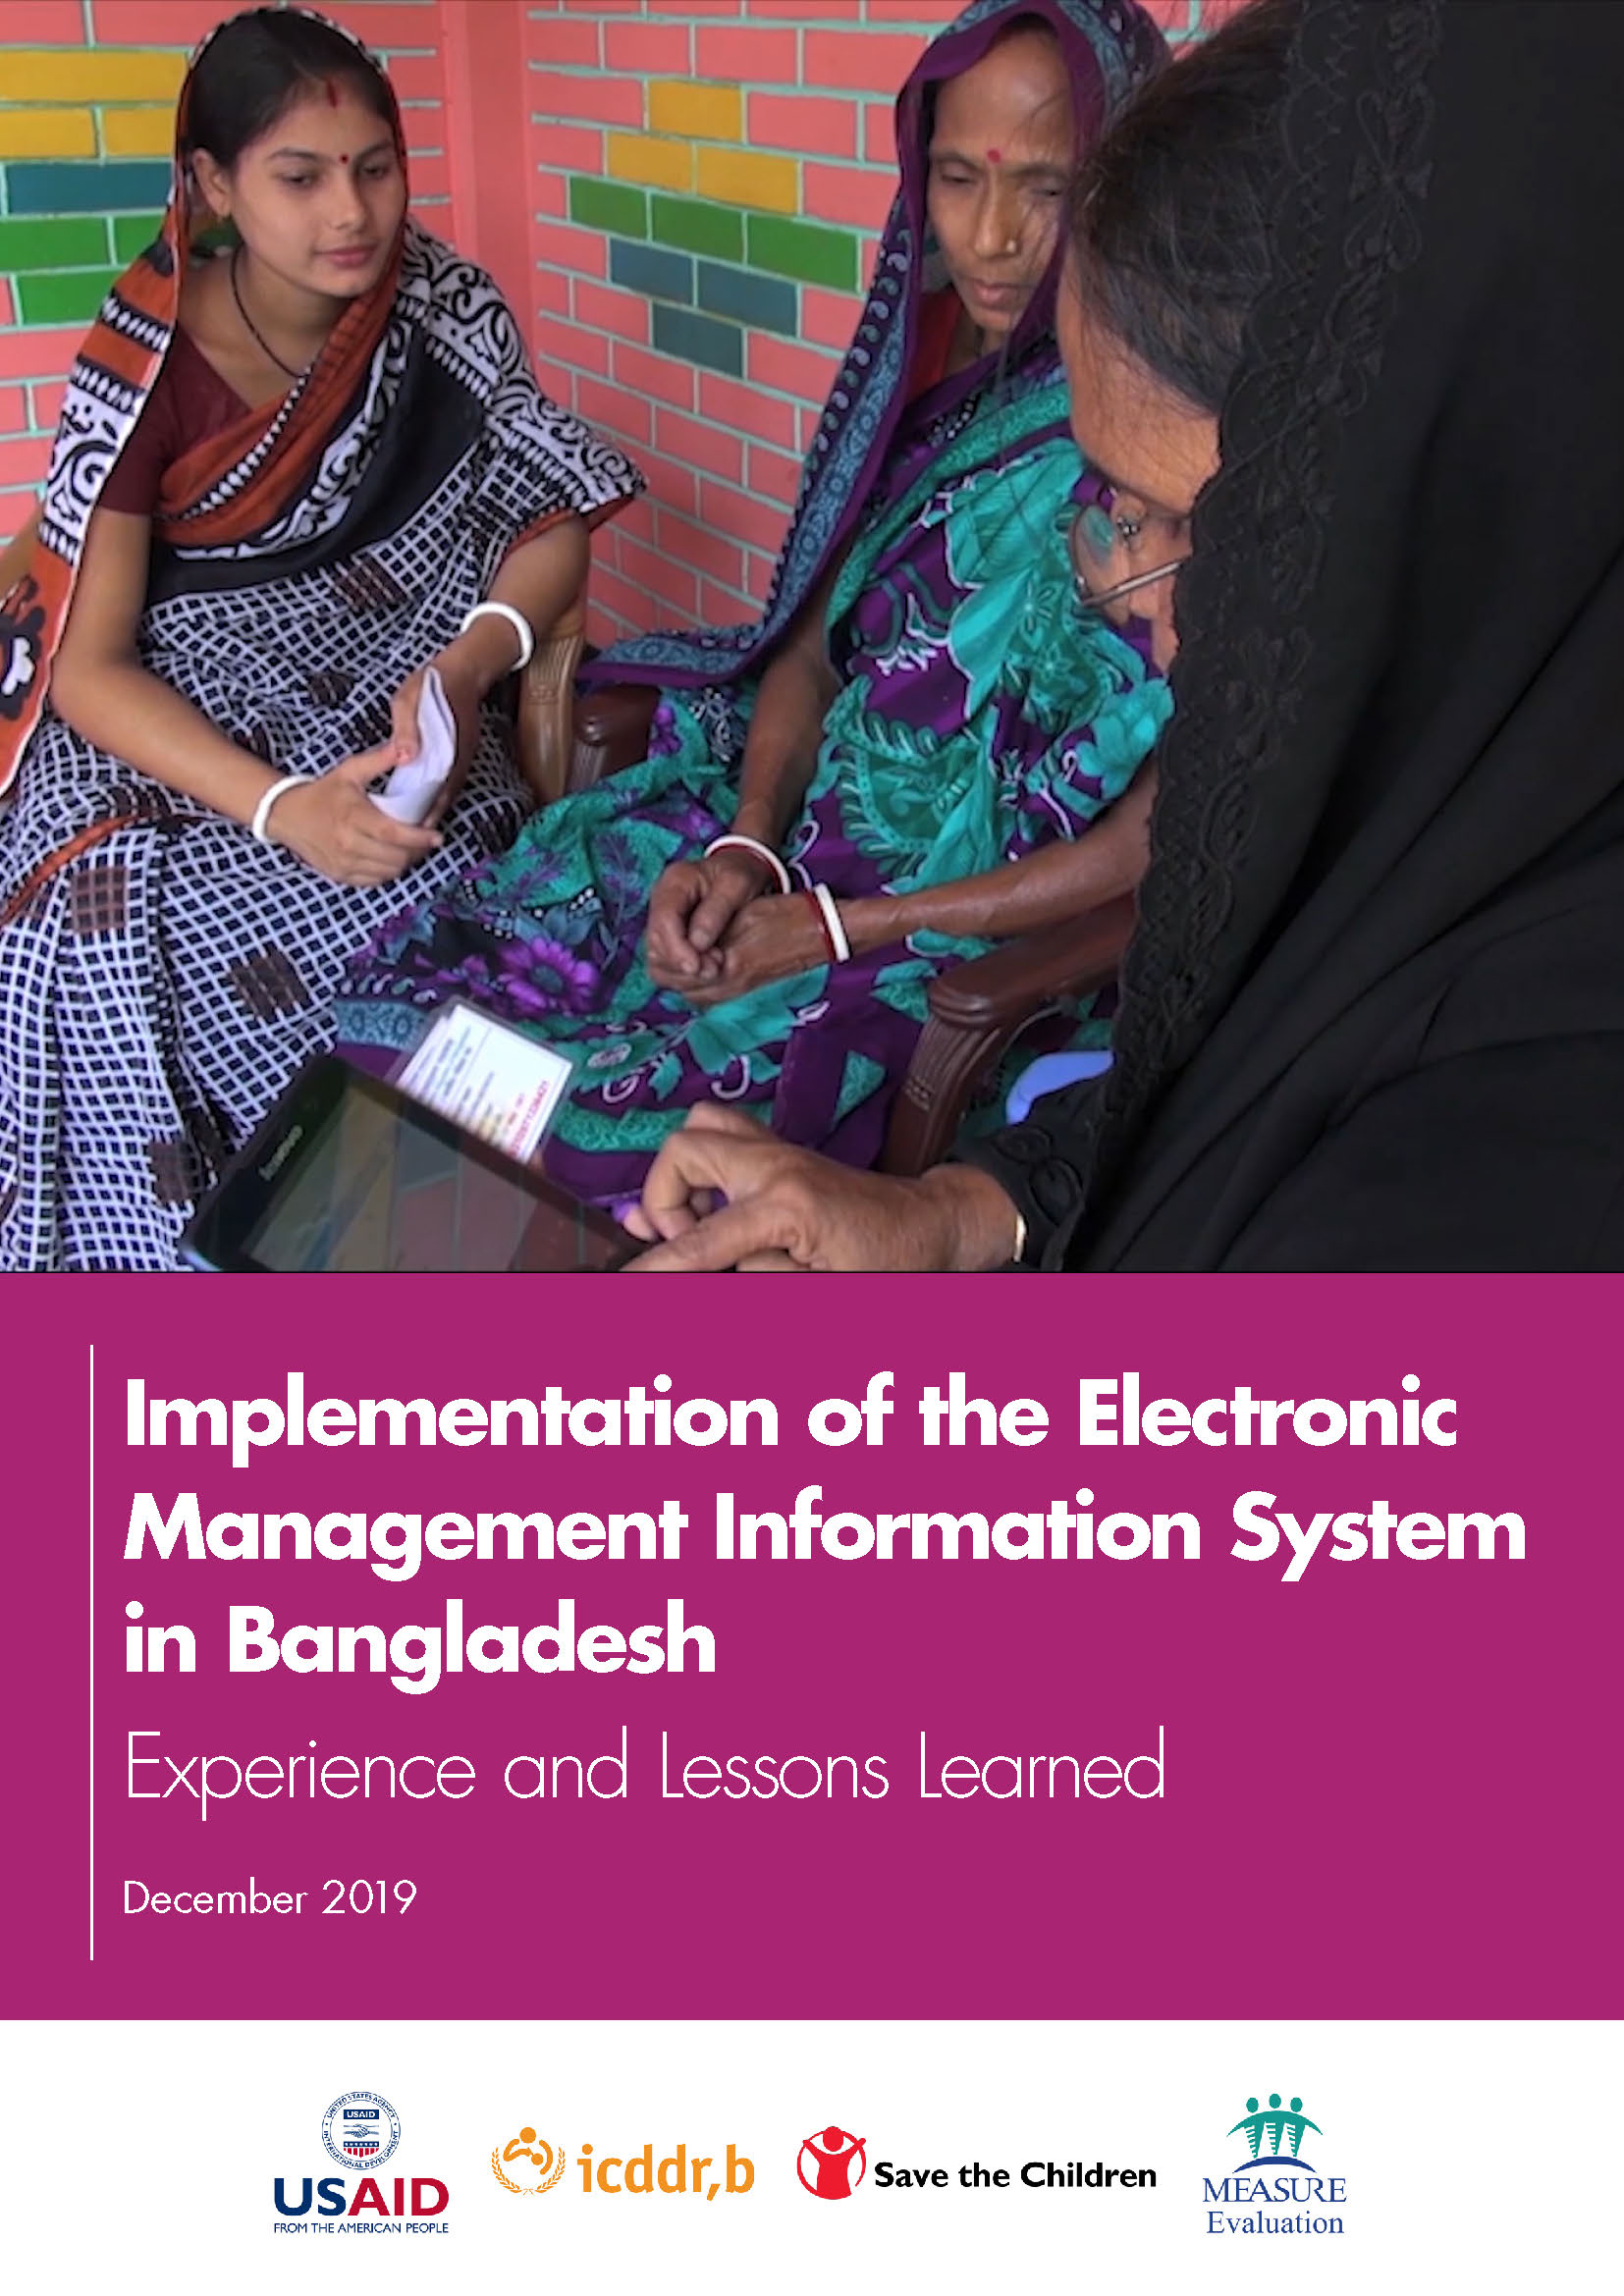 Implementation of the Electronic Management Information System in Bangladesh: Experience and Lessons Learned